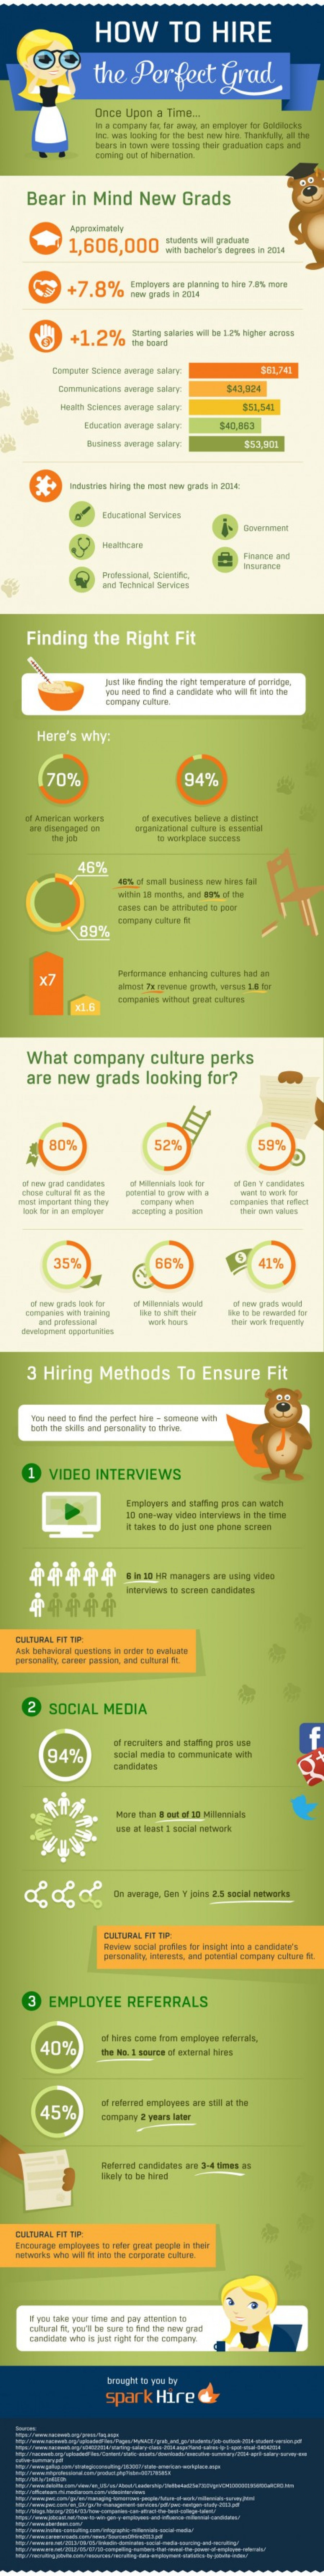 How to Hire the Perfect Grad Infographic